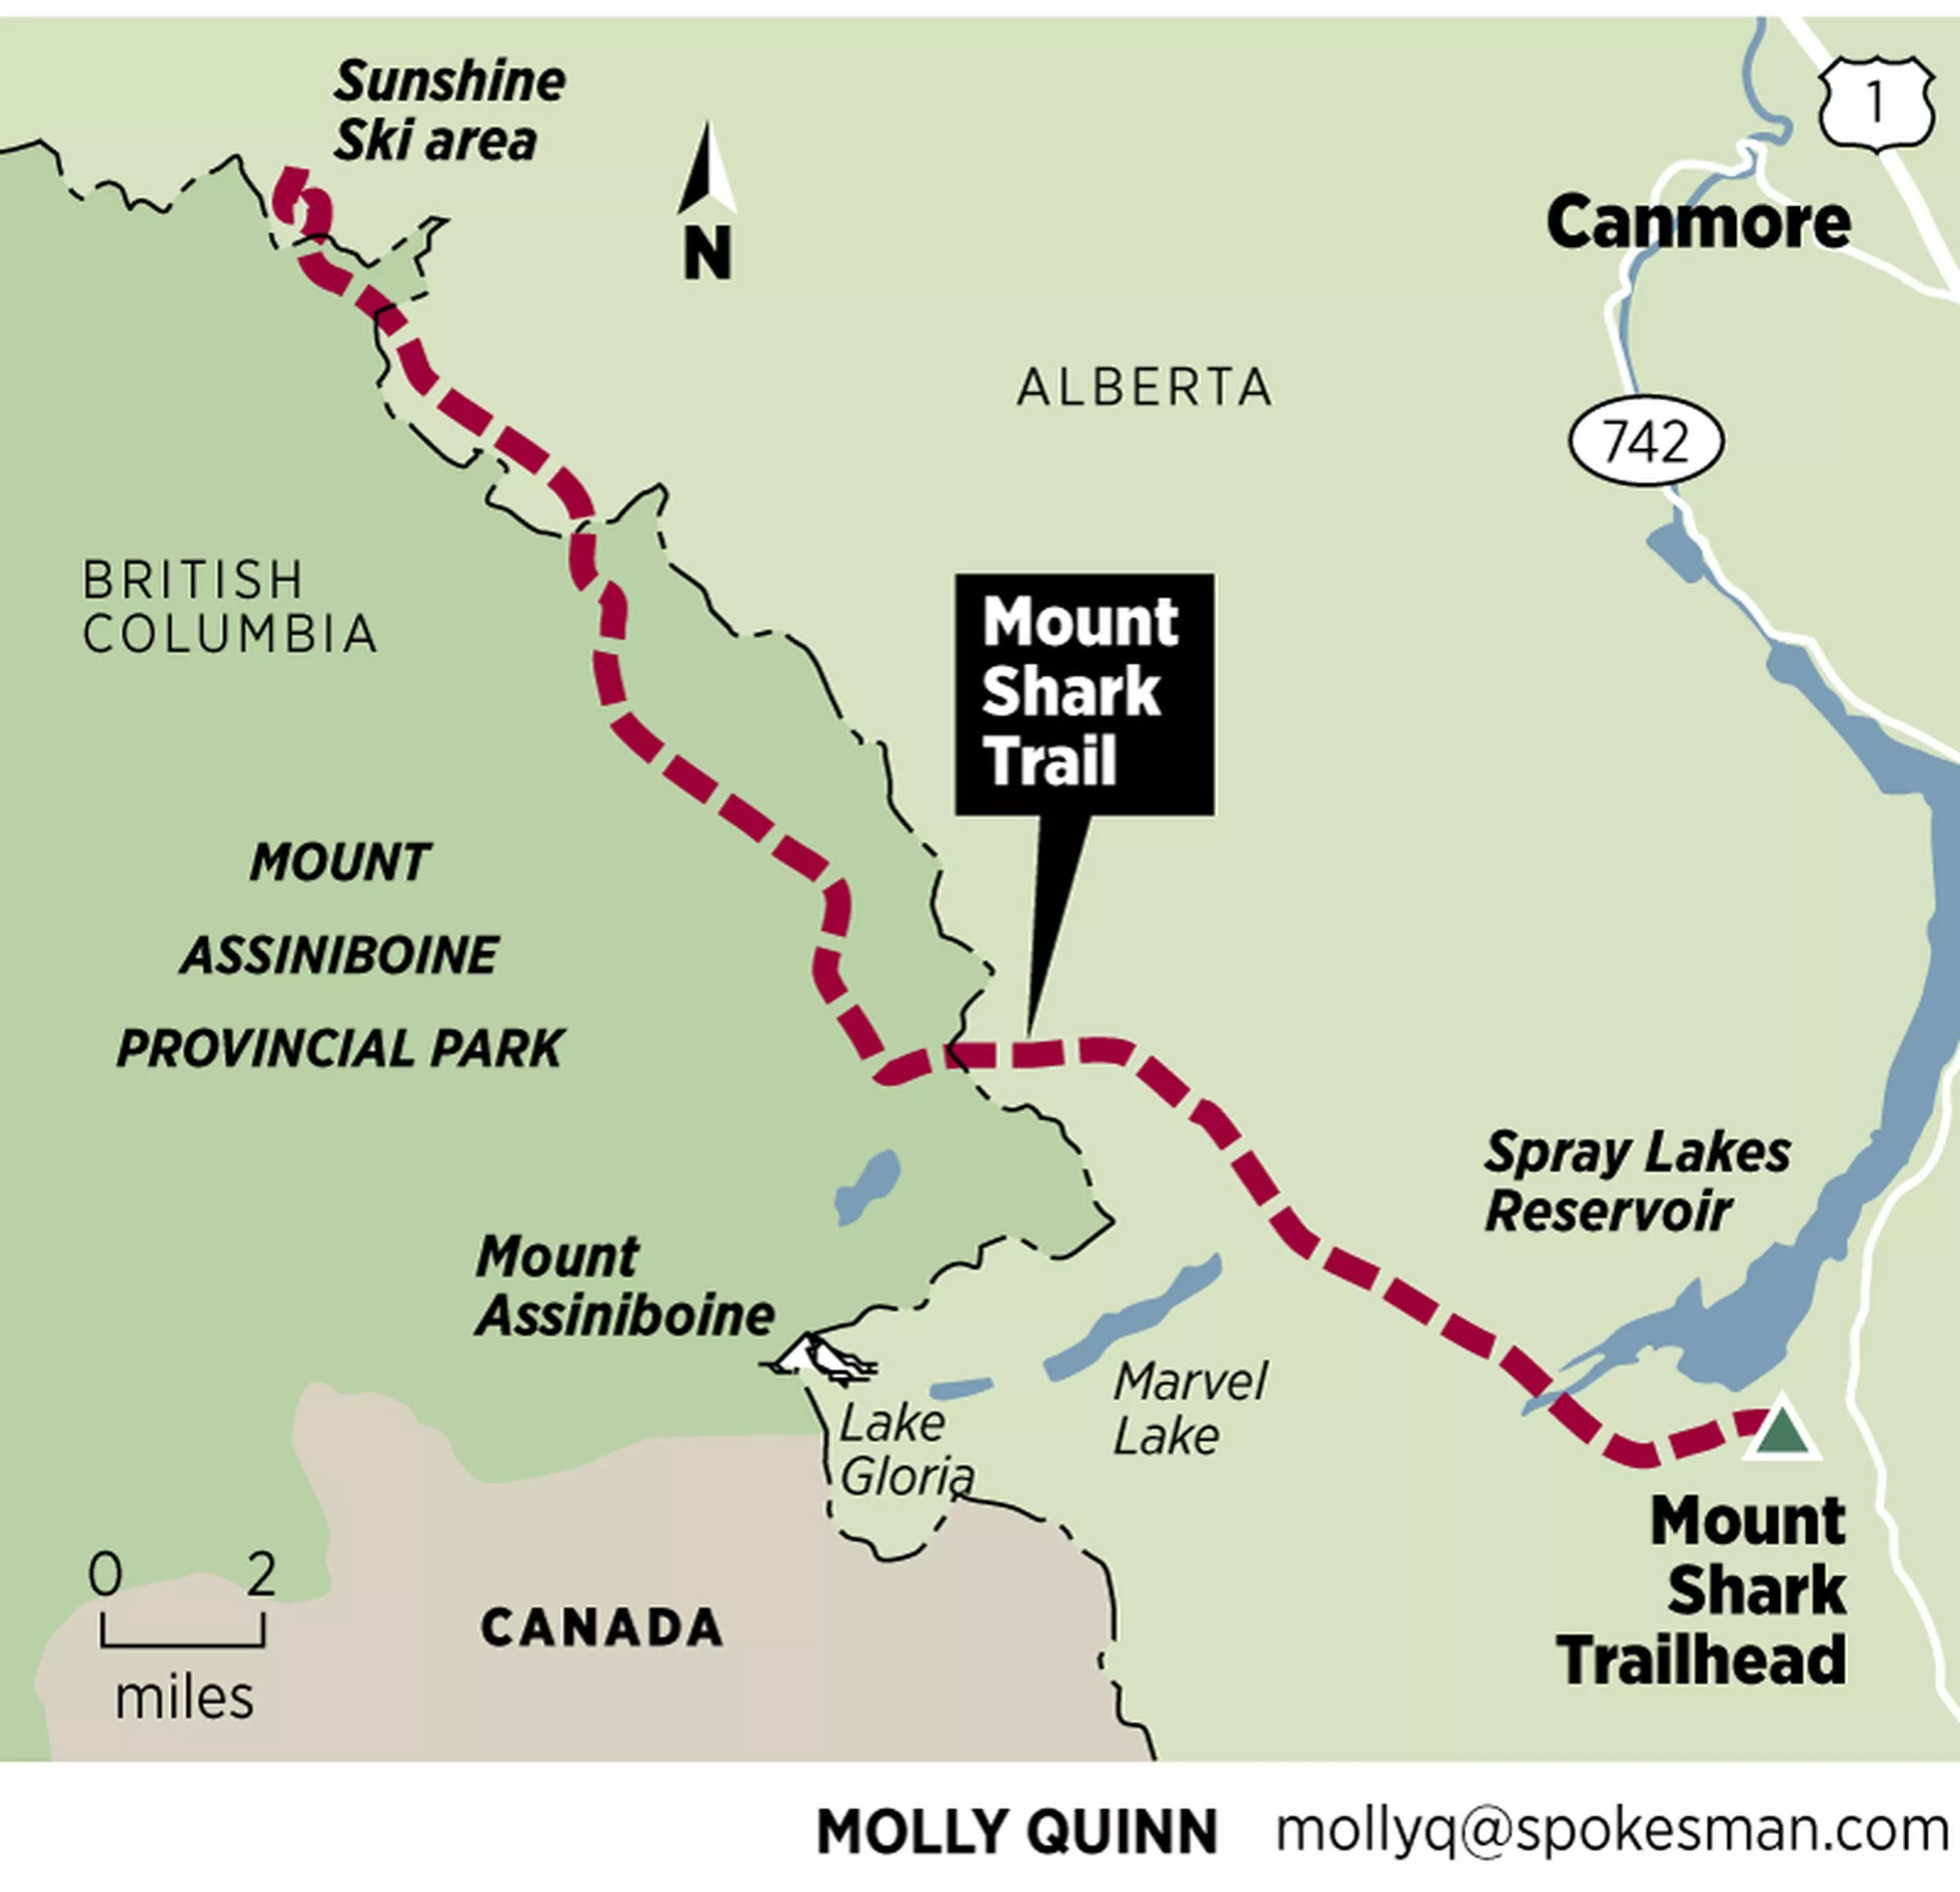 These hiking trails are accessed most often. The Magic Of Mount Assiniboine Brings Diverse Crowd To Canadian Rockies The Spokesman Review